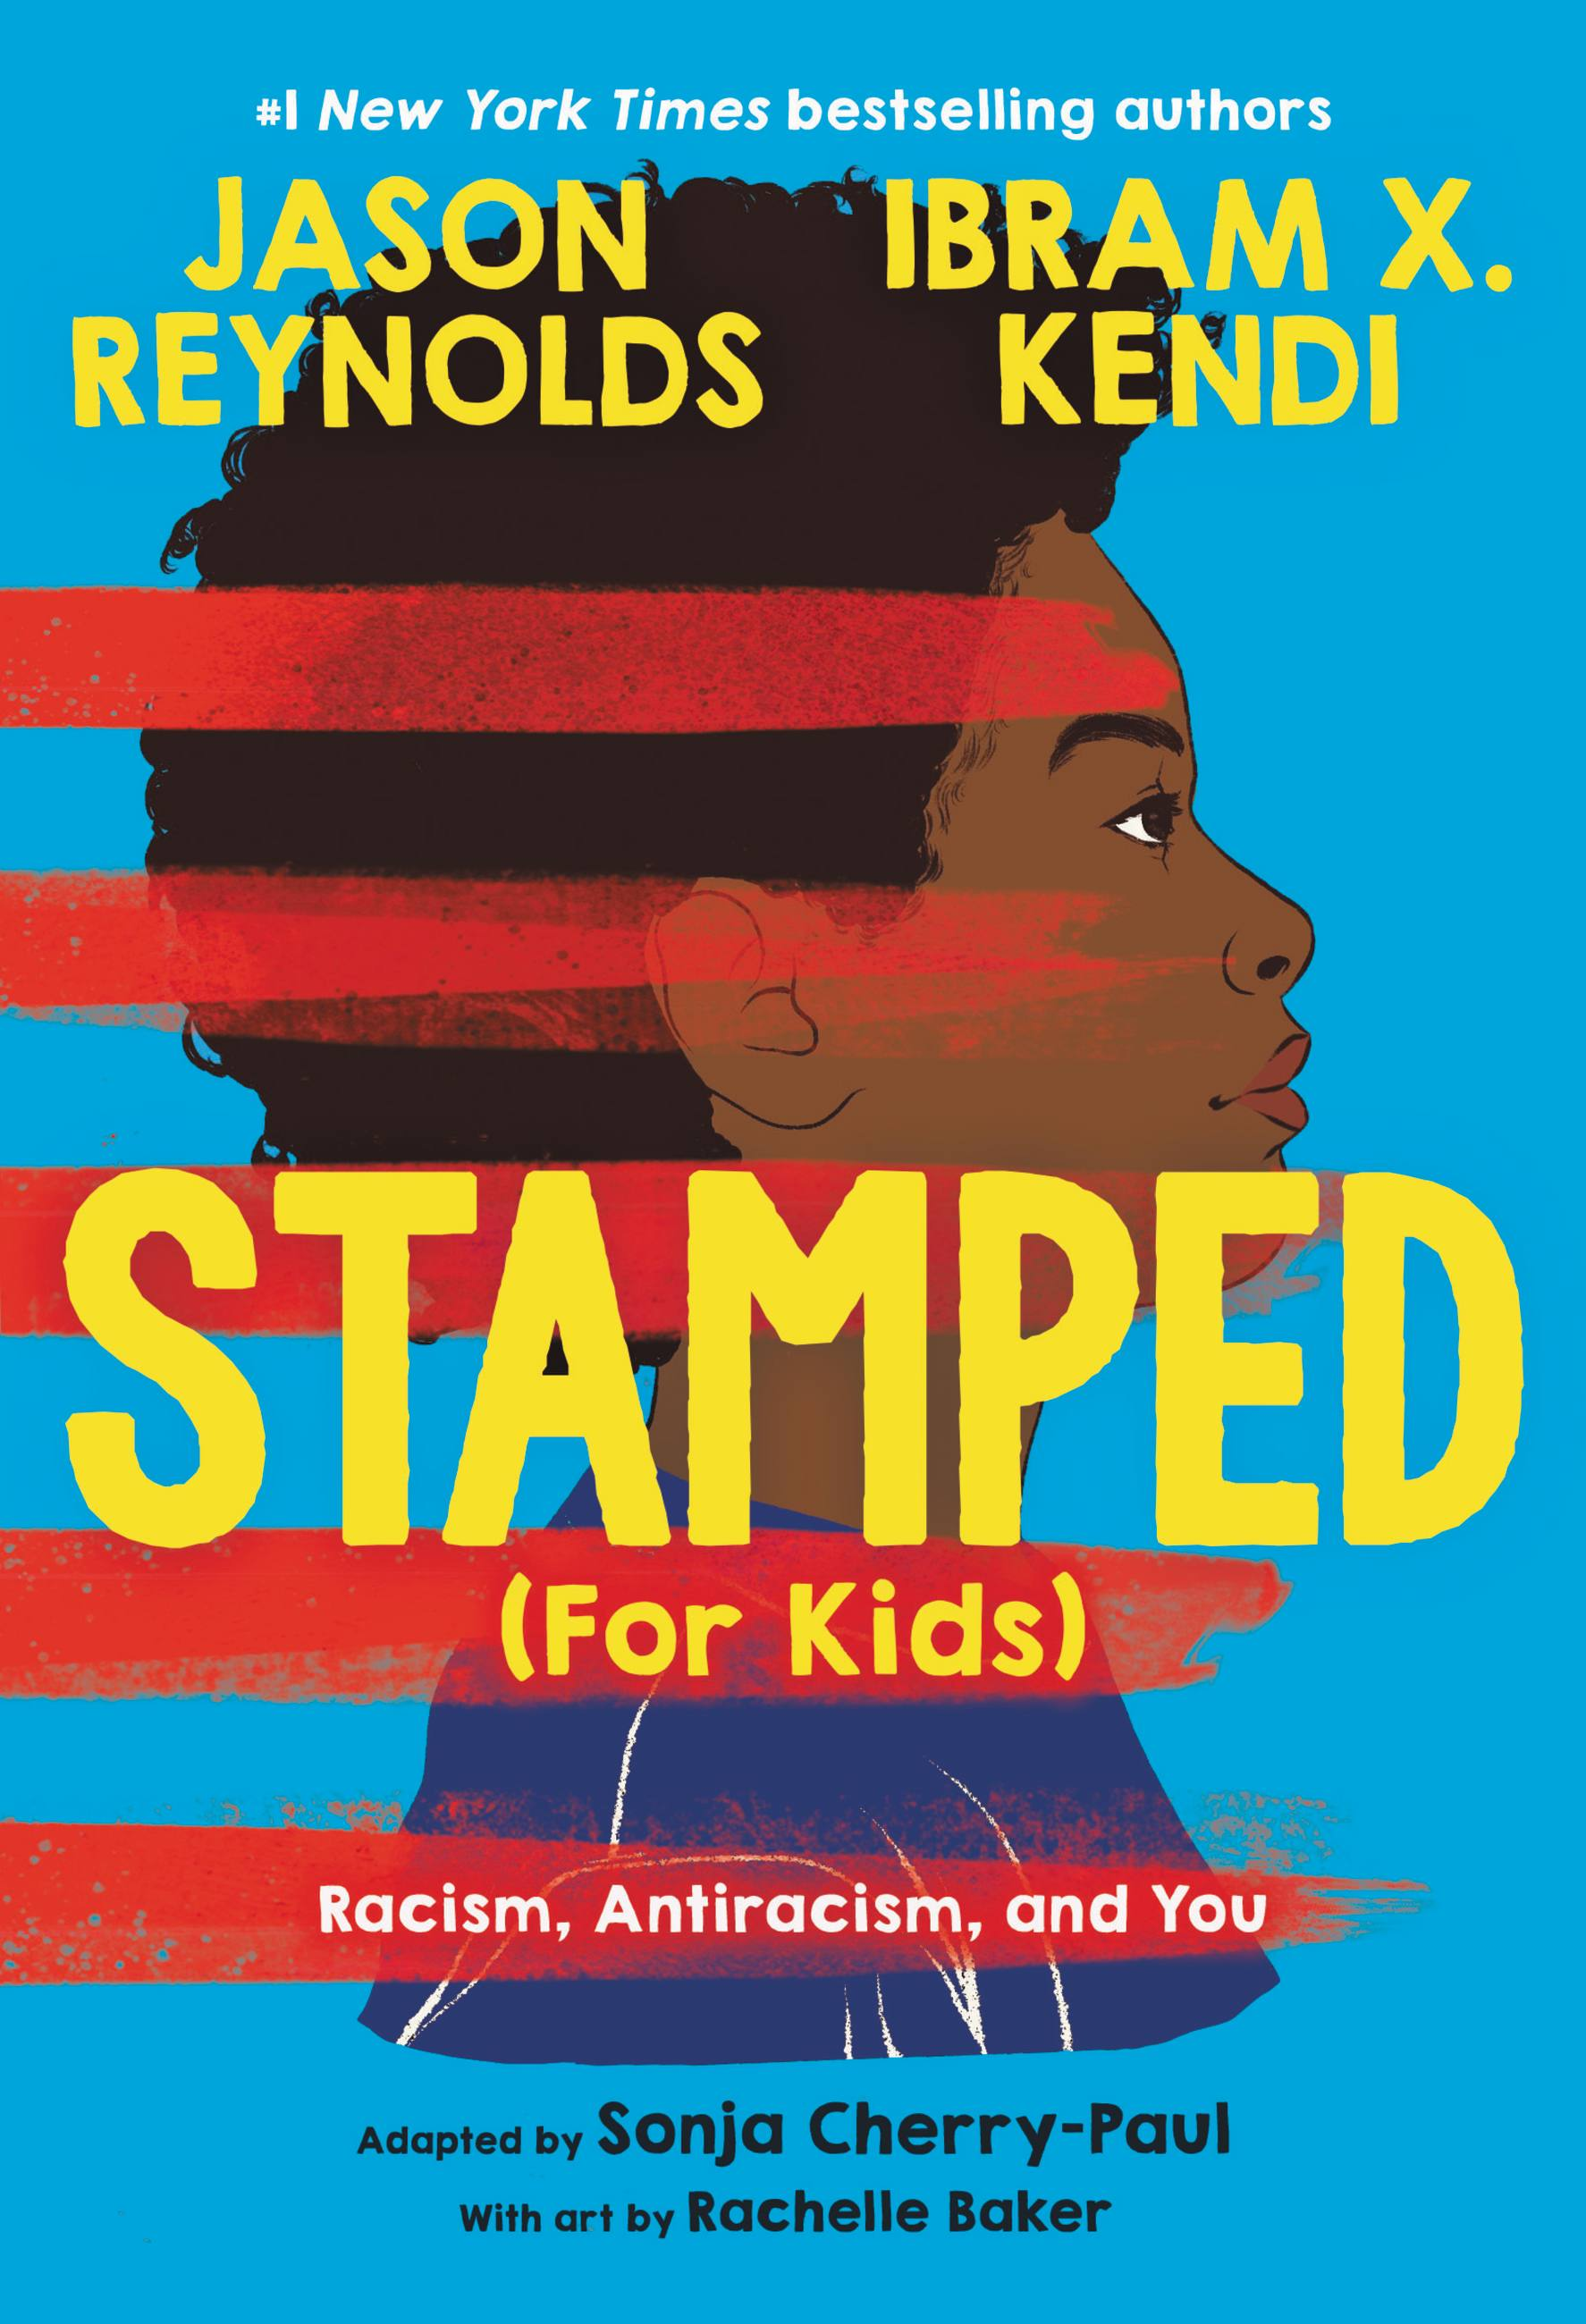 Stamped (For Kids) Racism, Antiracism, and You